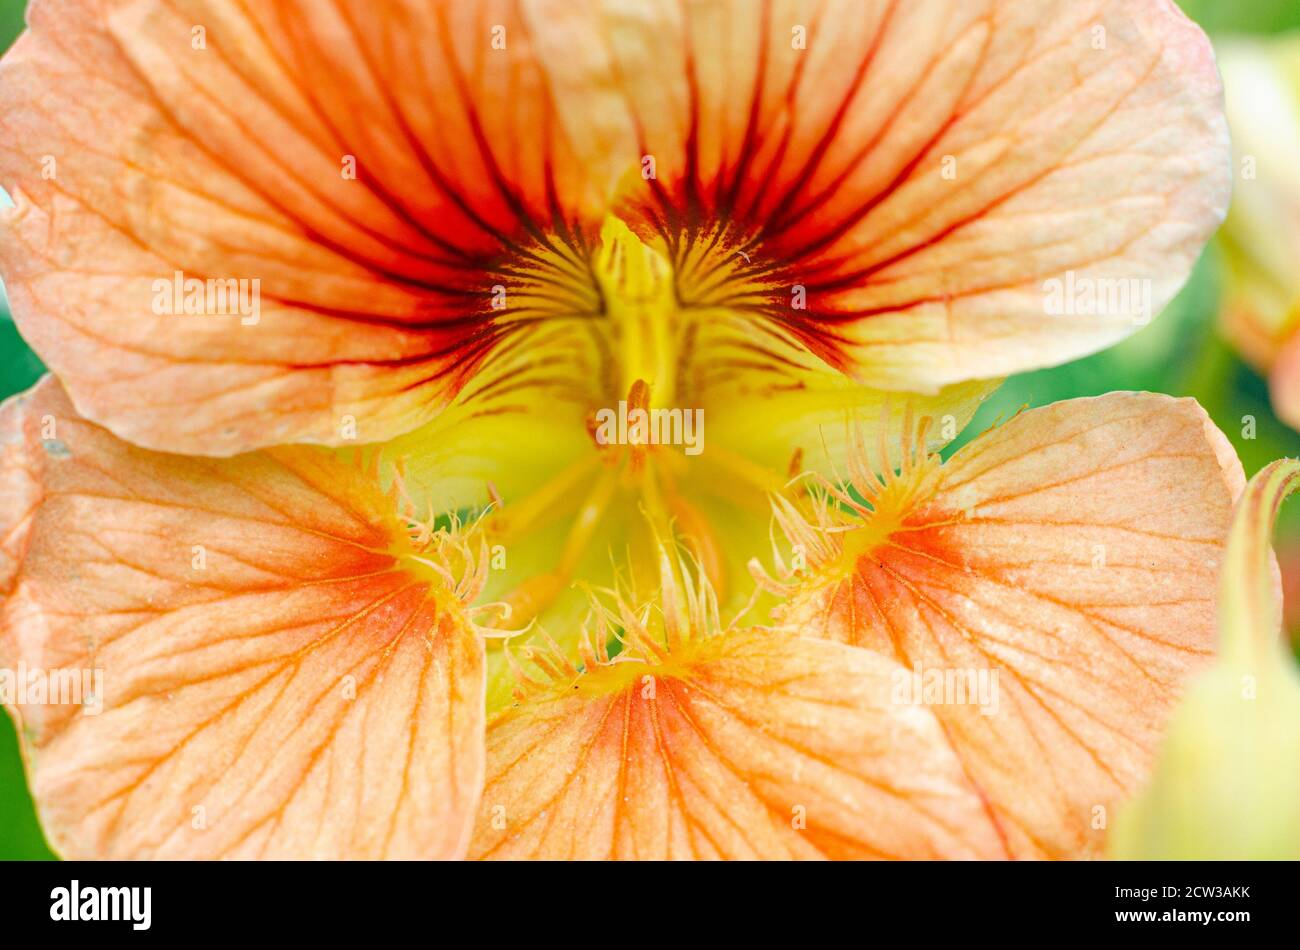 a-close-up-view-of-a-peach-coloured-nasturtium-or-tropaeolum-flower-2CW3AKK.jpg